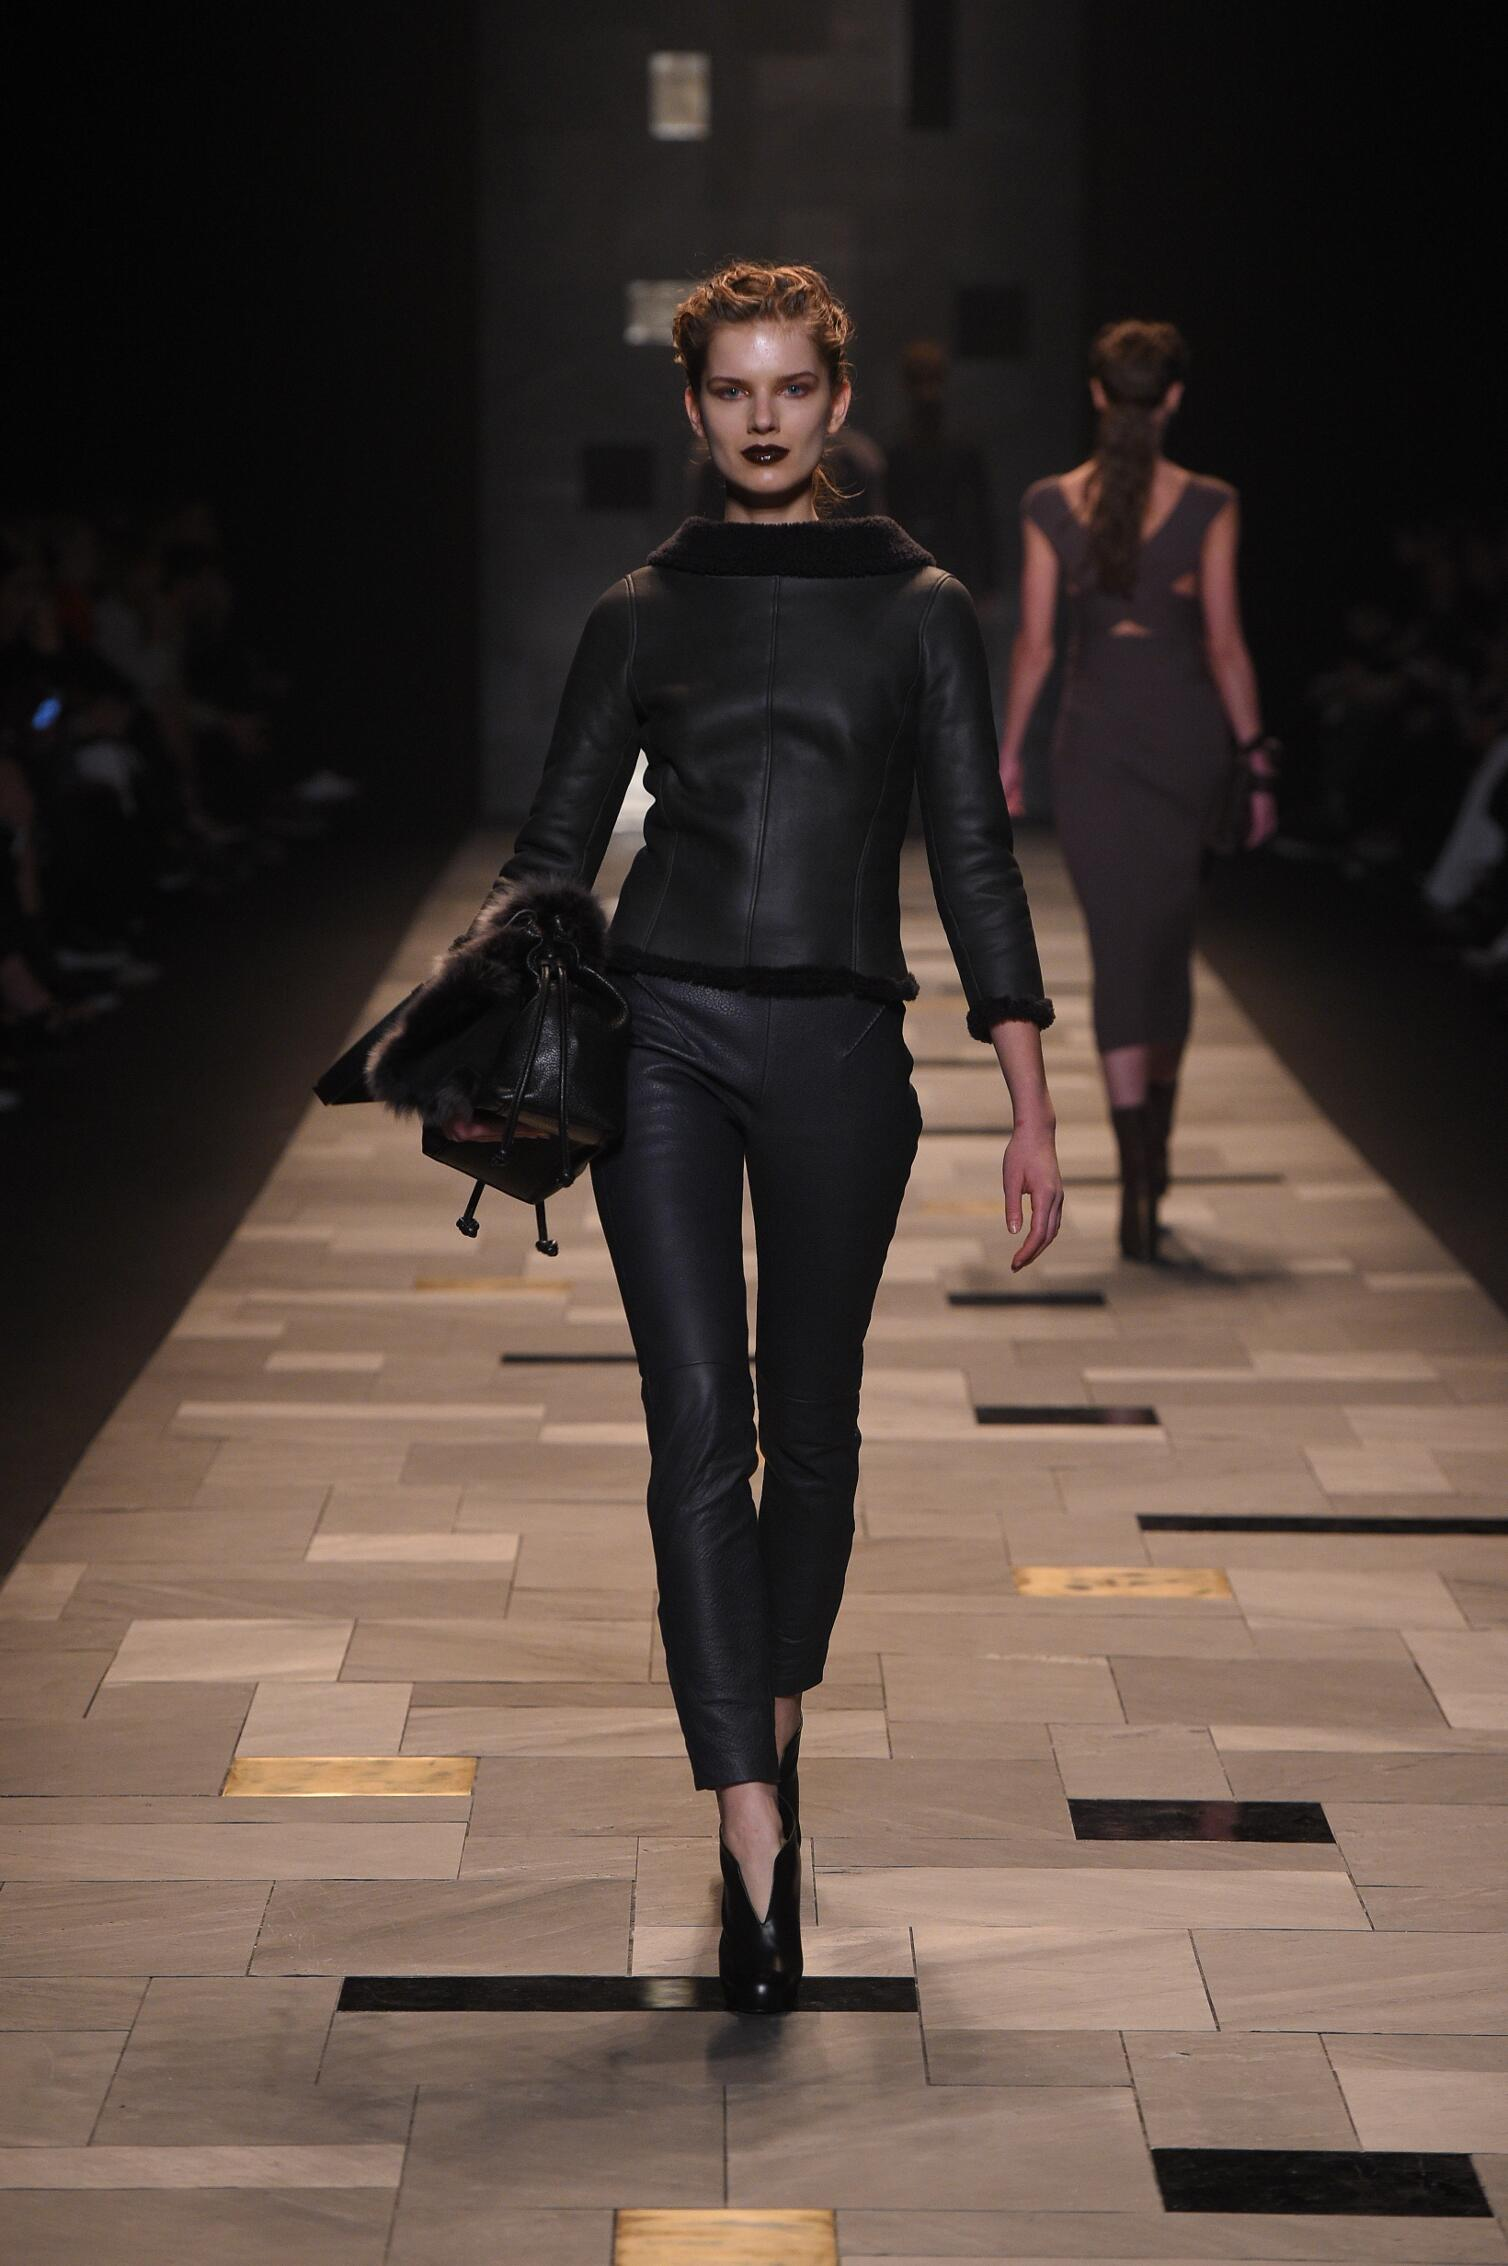 Trussardi Fall Winter 2015 16 Womenswear Collection Milan Fashion Week Fashion Show